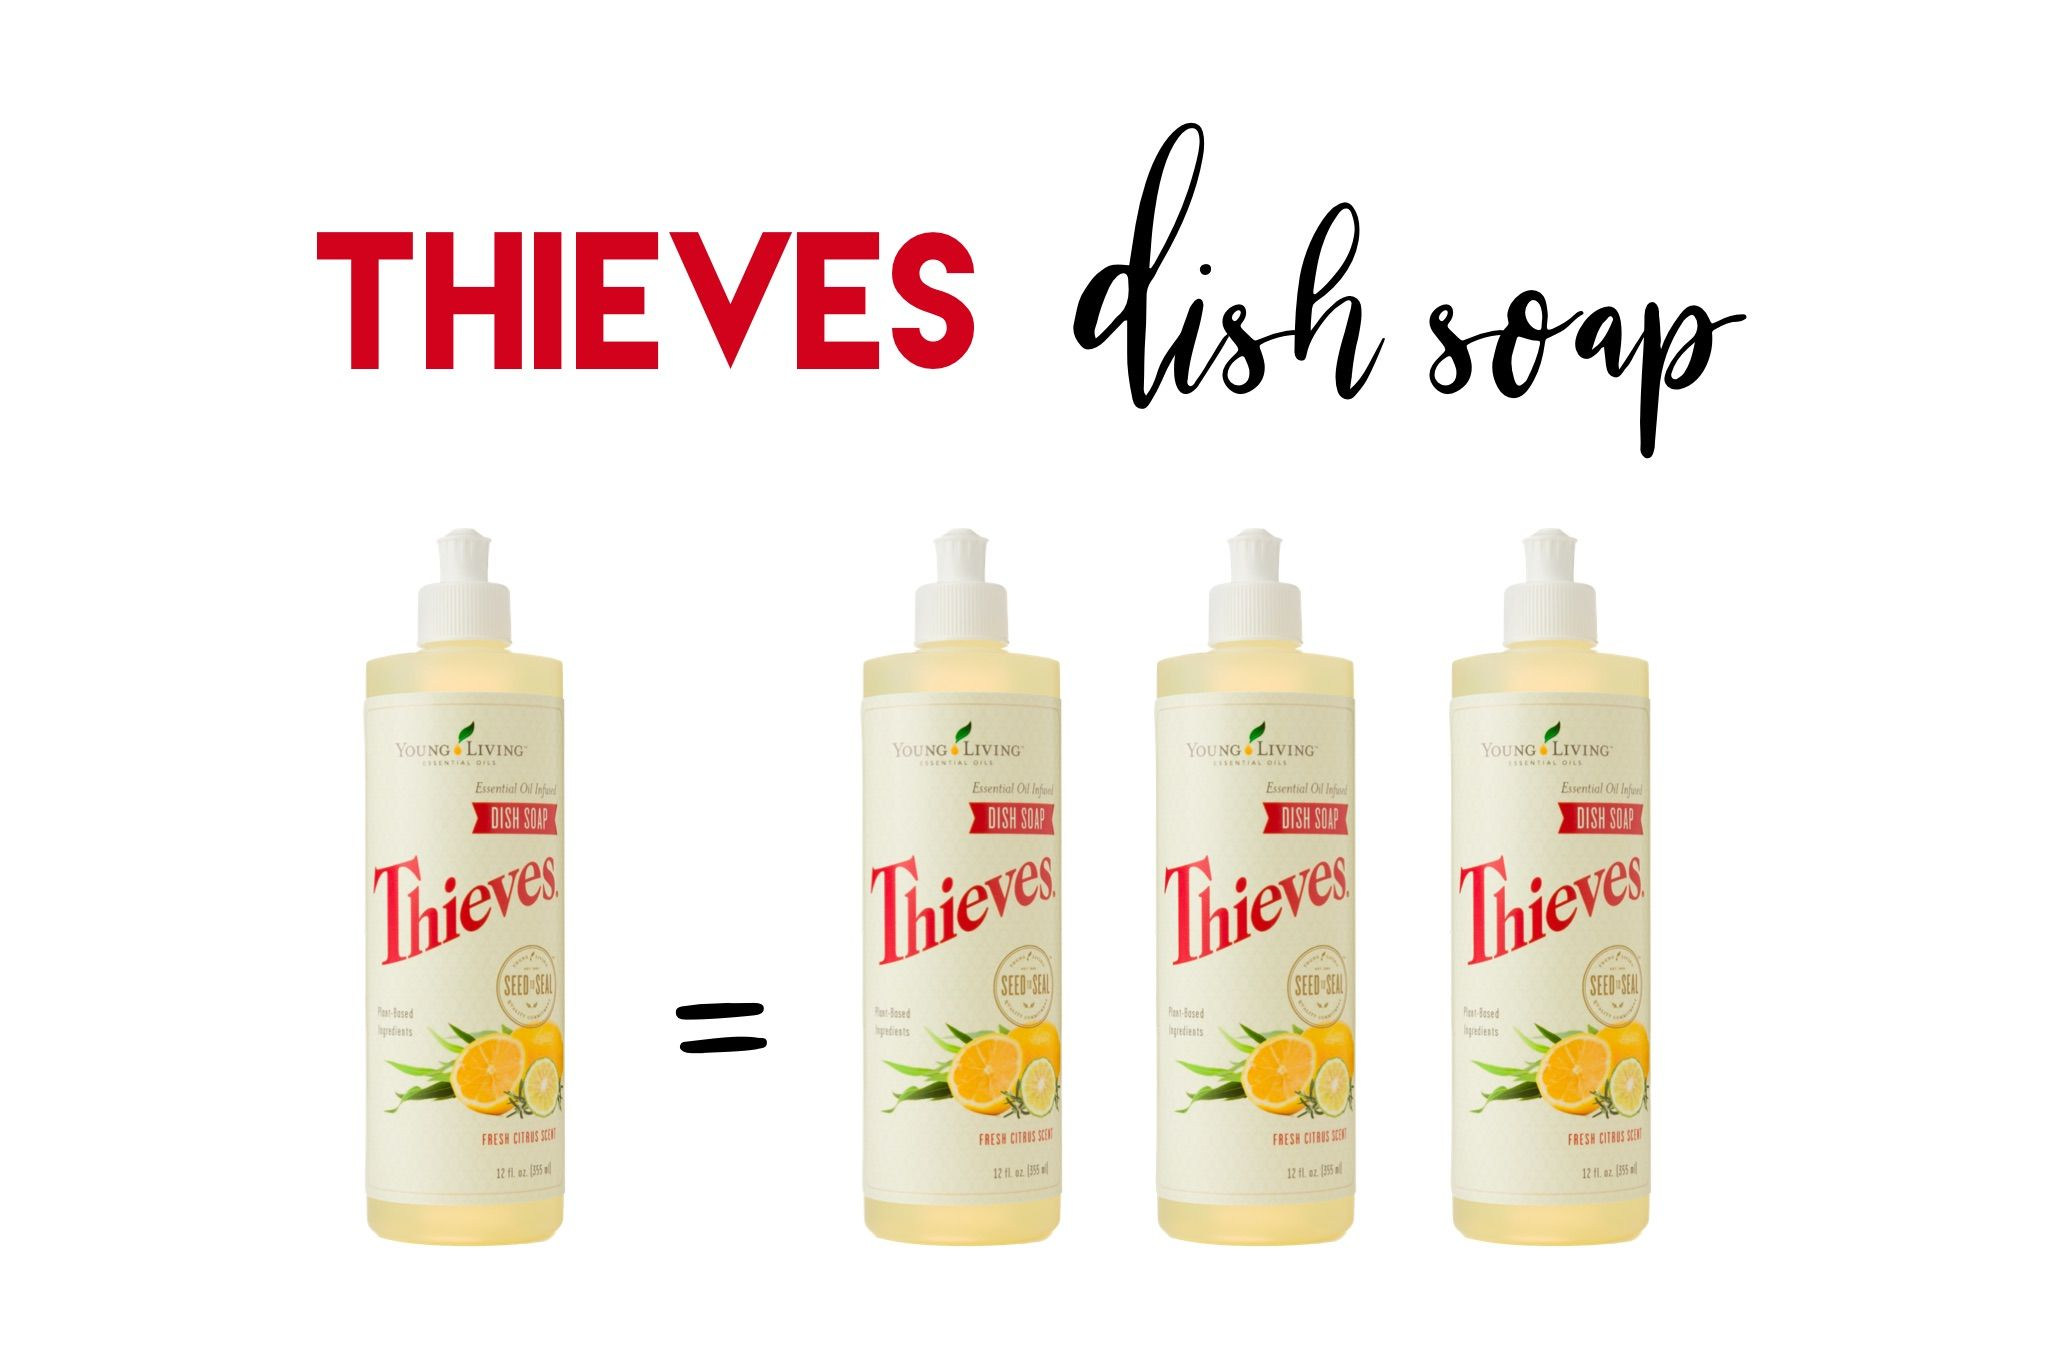 How To Triple Your Thieves Dish Soap! Essential oils